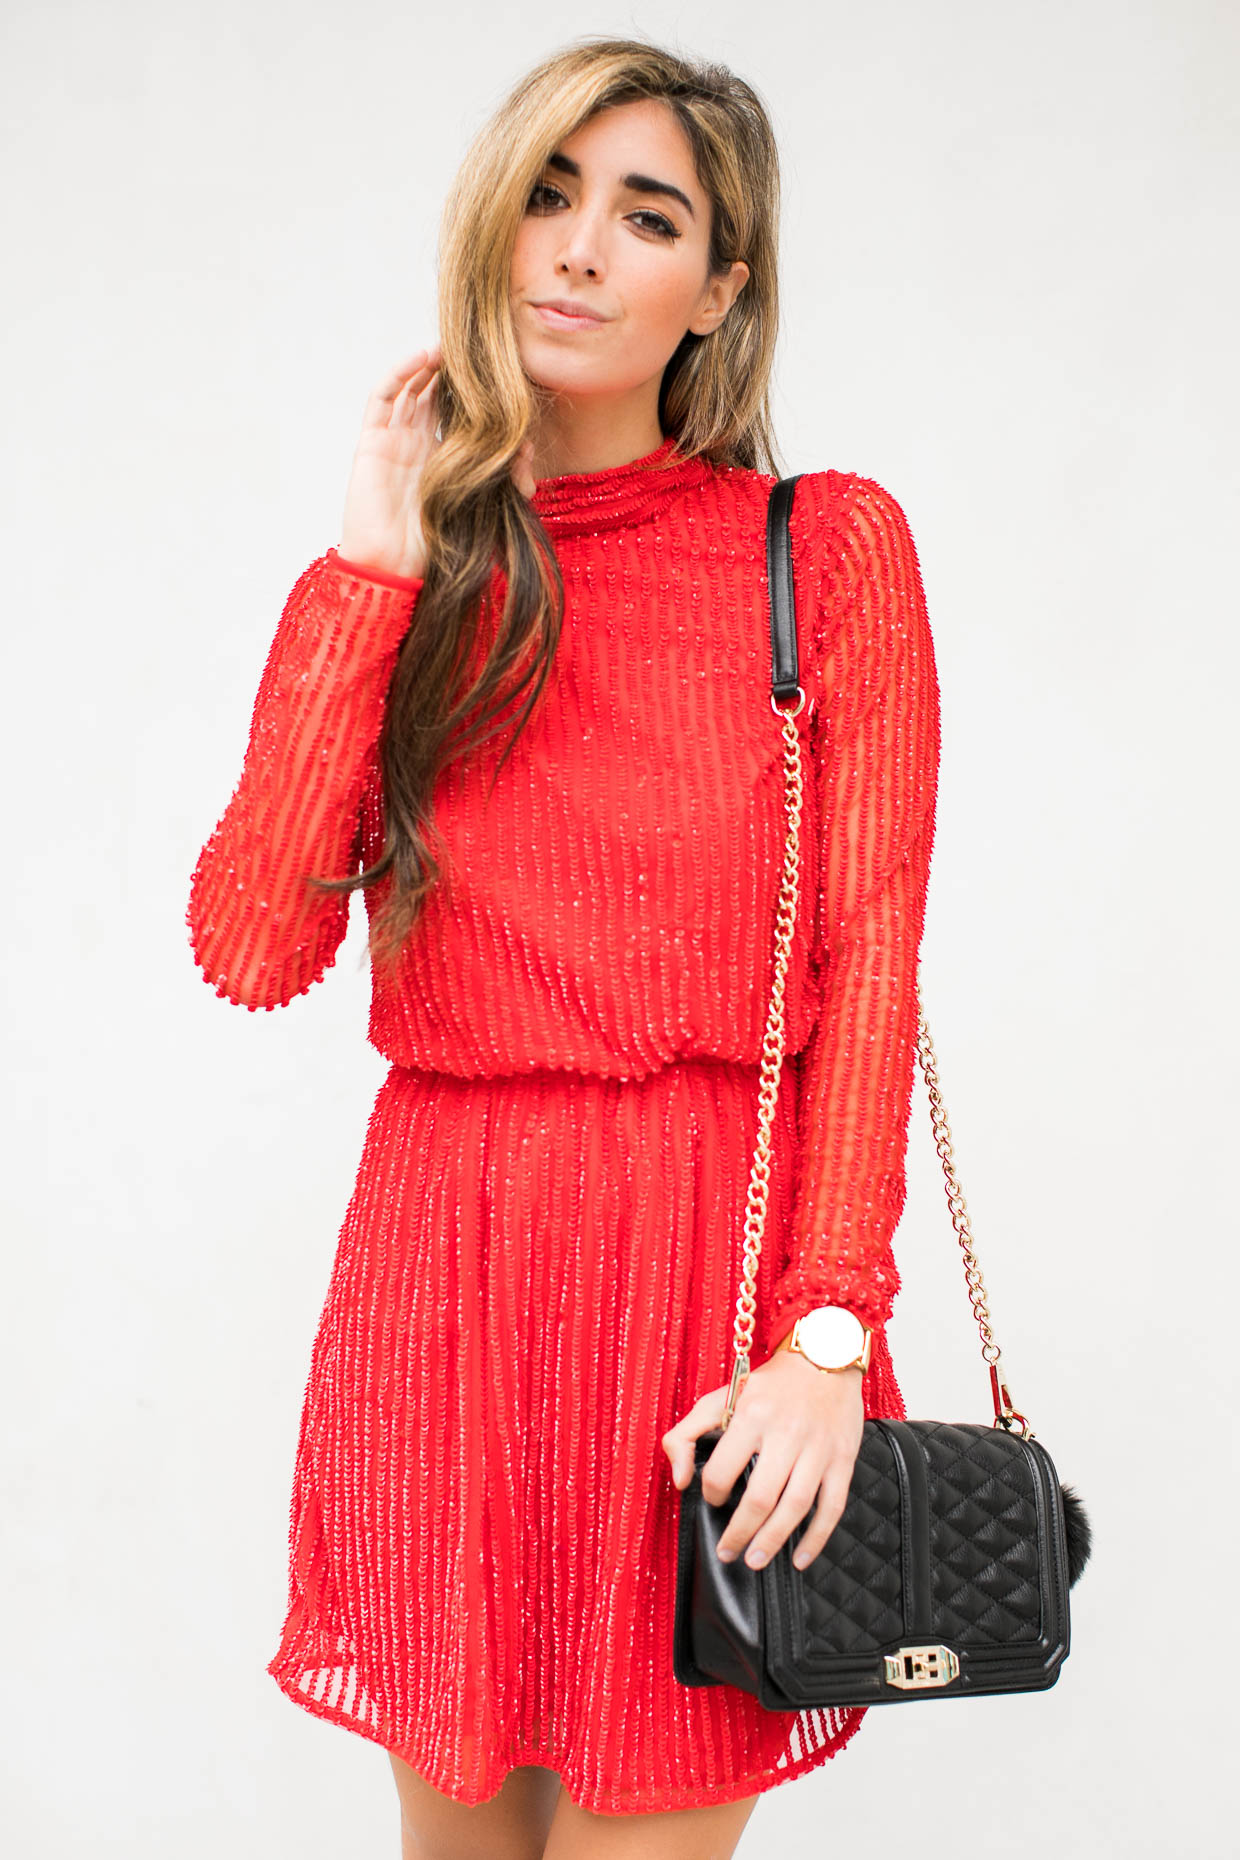 Fashion blogger The Darling Detail wears Topshop Sequin Blouson Dress,  Rebecca Minkoff 'Love' Crossbody Bag, Larsson & Jennings 'Lugano' Mesh Strap Watch, and BP.  Faux Fur Pom Bag Charm